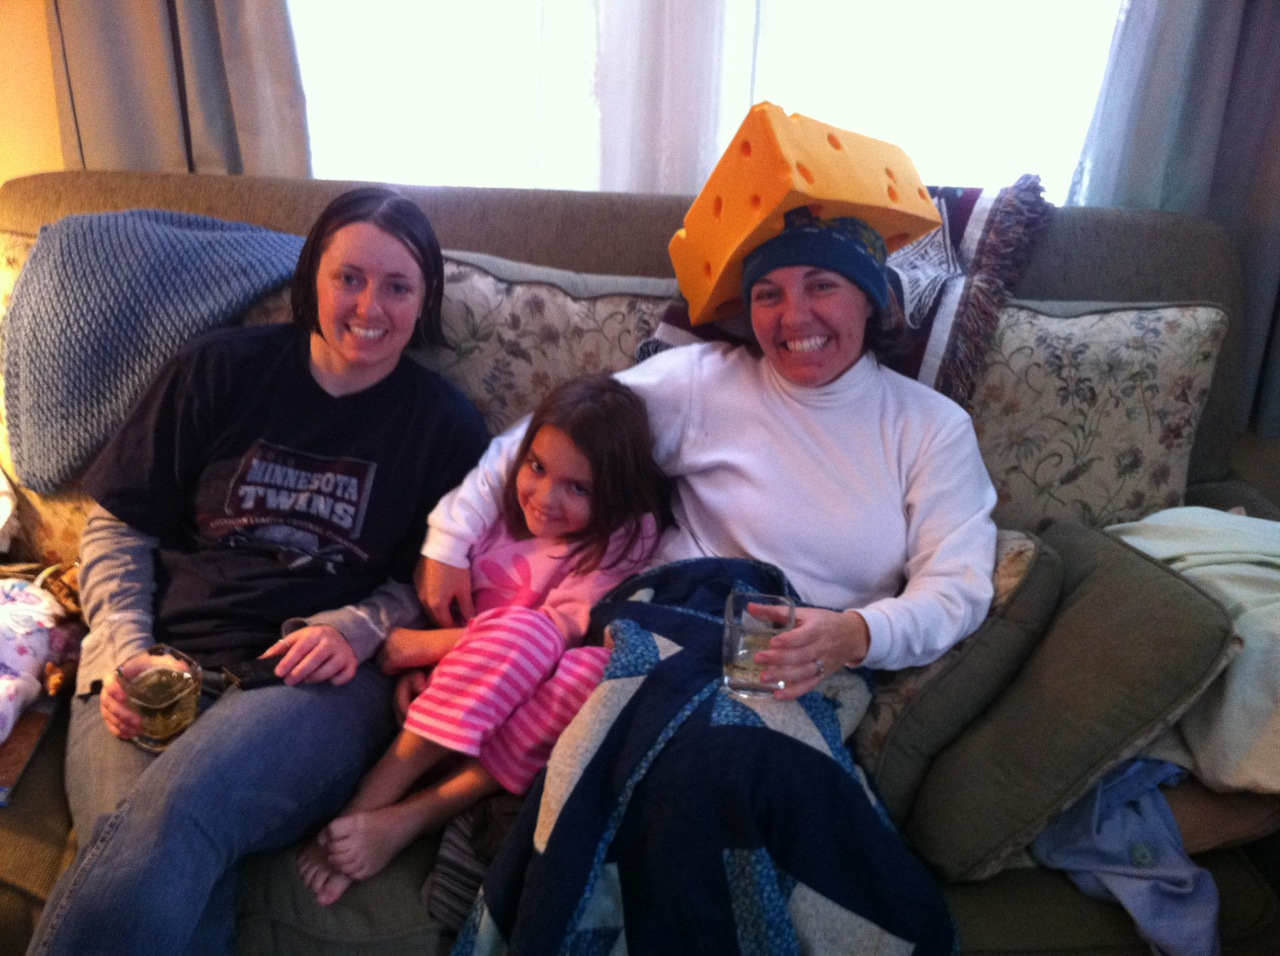 Aunt Kat, Analise, and Kristine watching the packers game